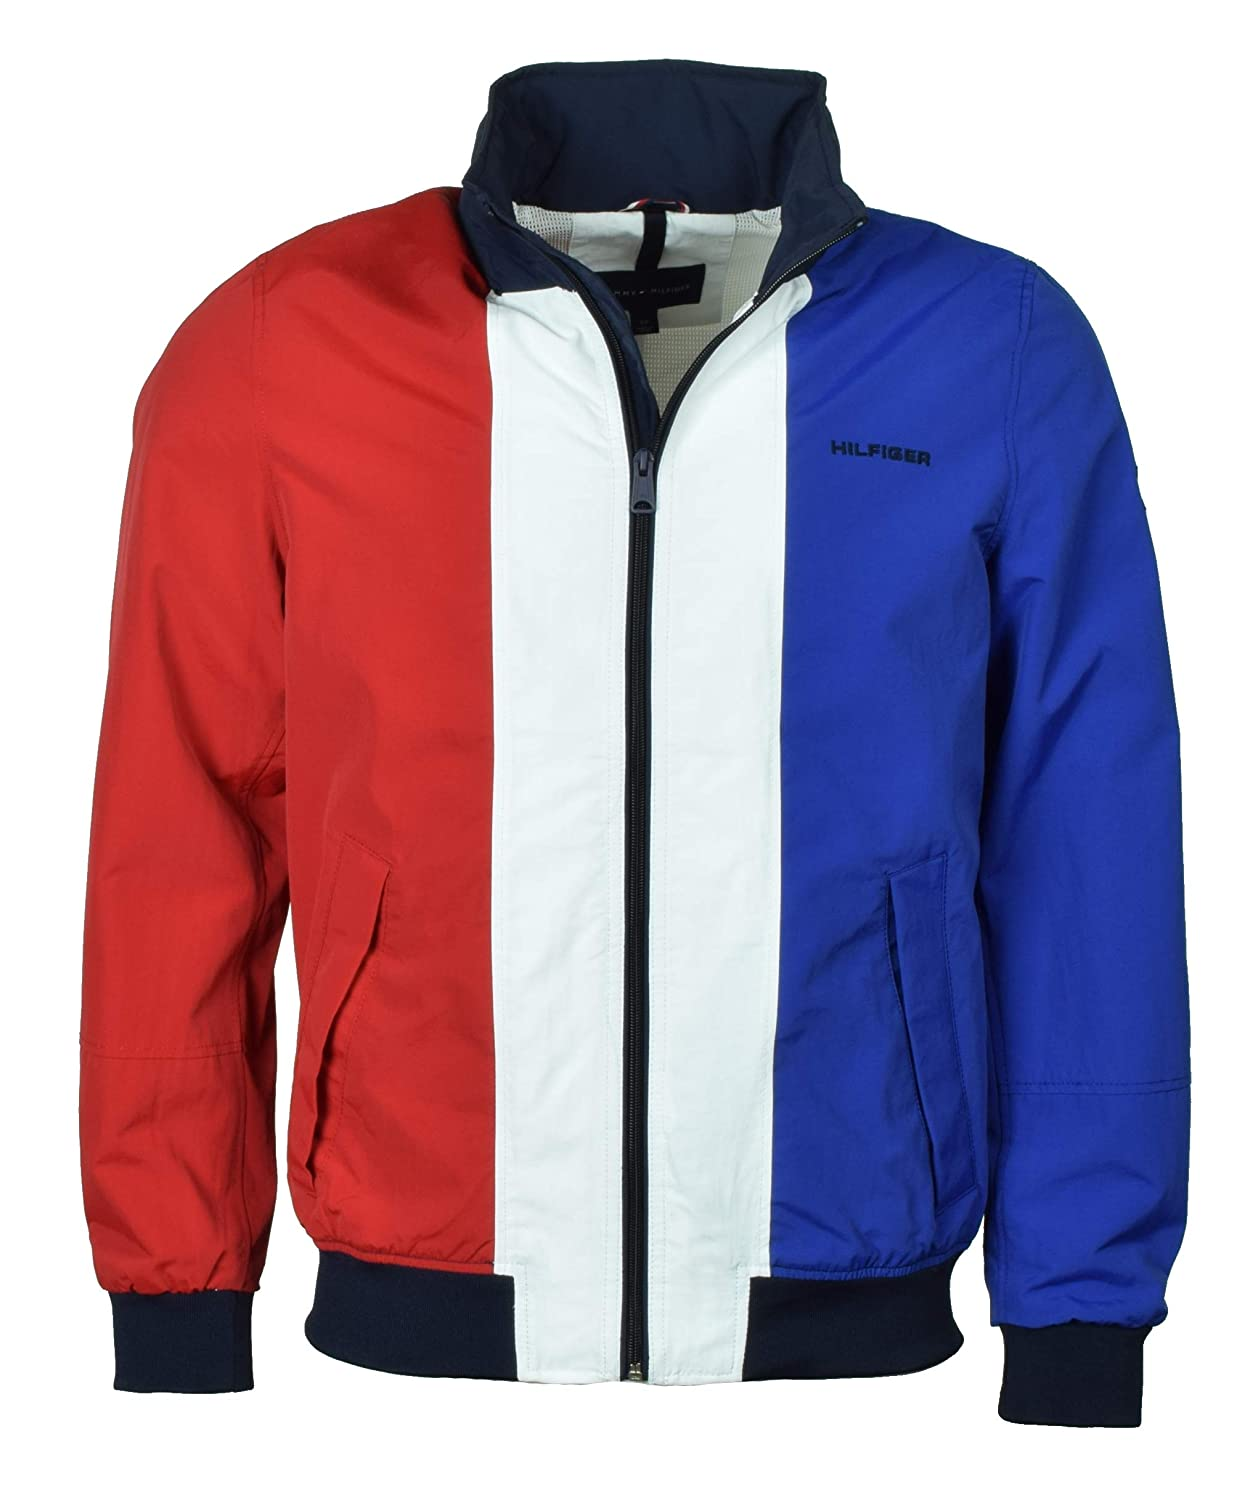 ddbd6210 Tommy Hilfiger Mens Nylon Yacht Jacket Windbreaker - L - Red/White/Blue at  Amazon Men's Clothing store: